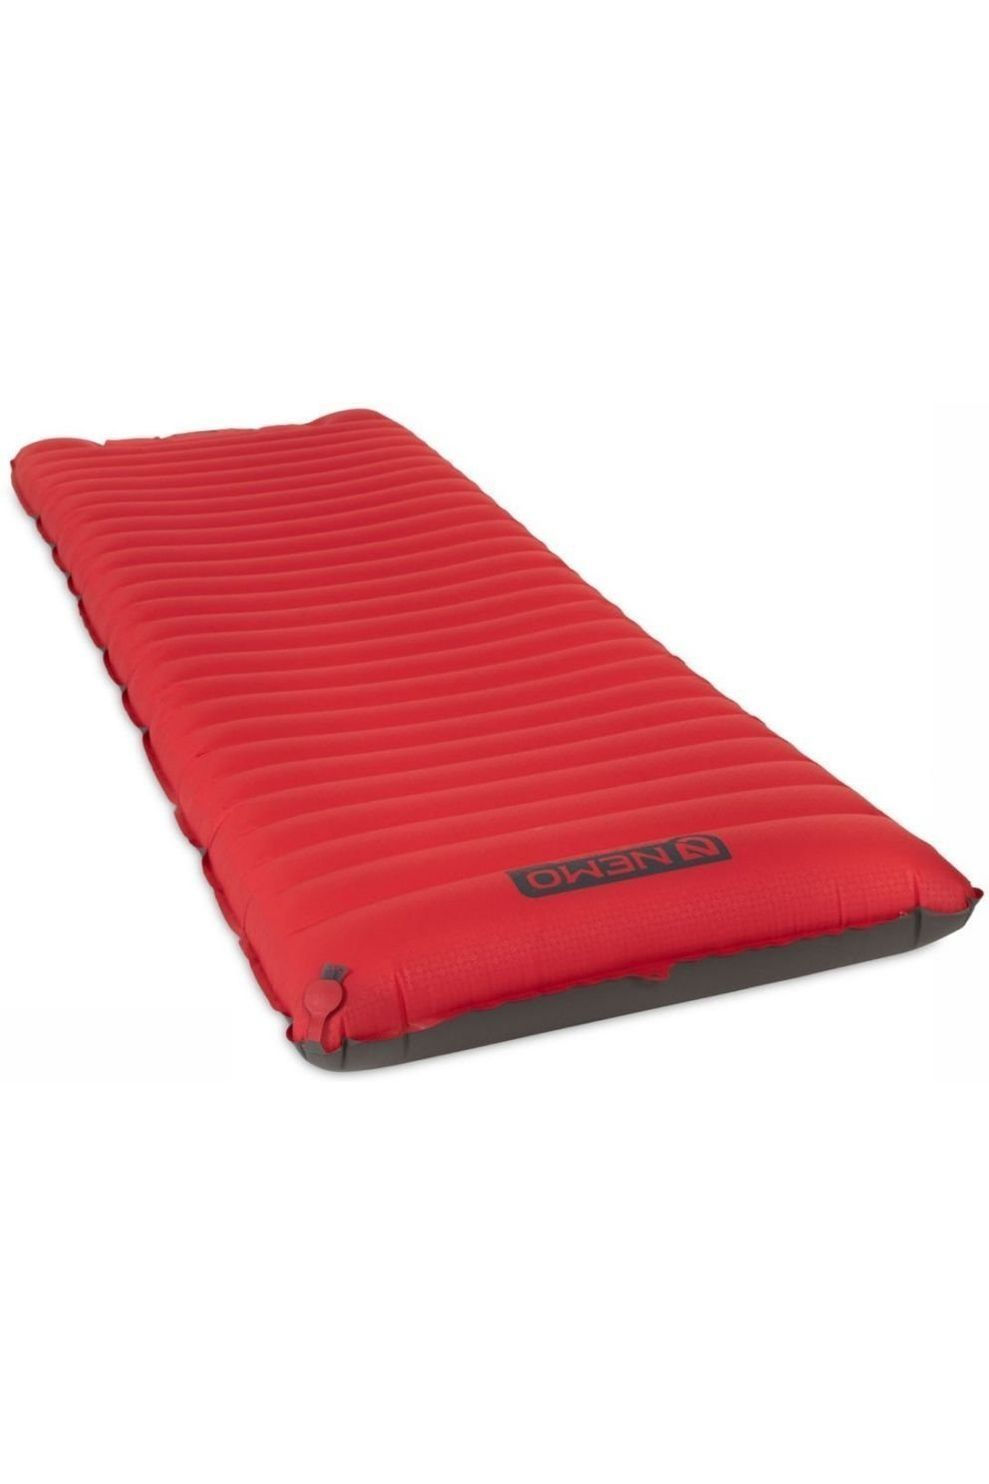 Nemo Slaapmat Cosmo 3D Insulated Long Wide - Rood